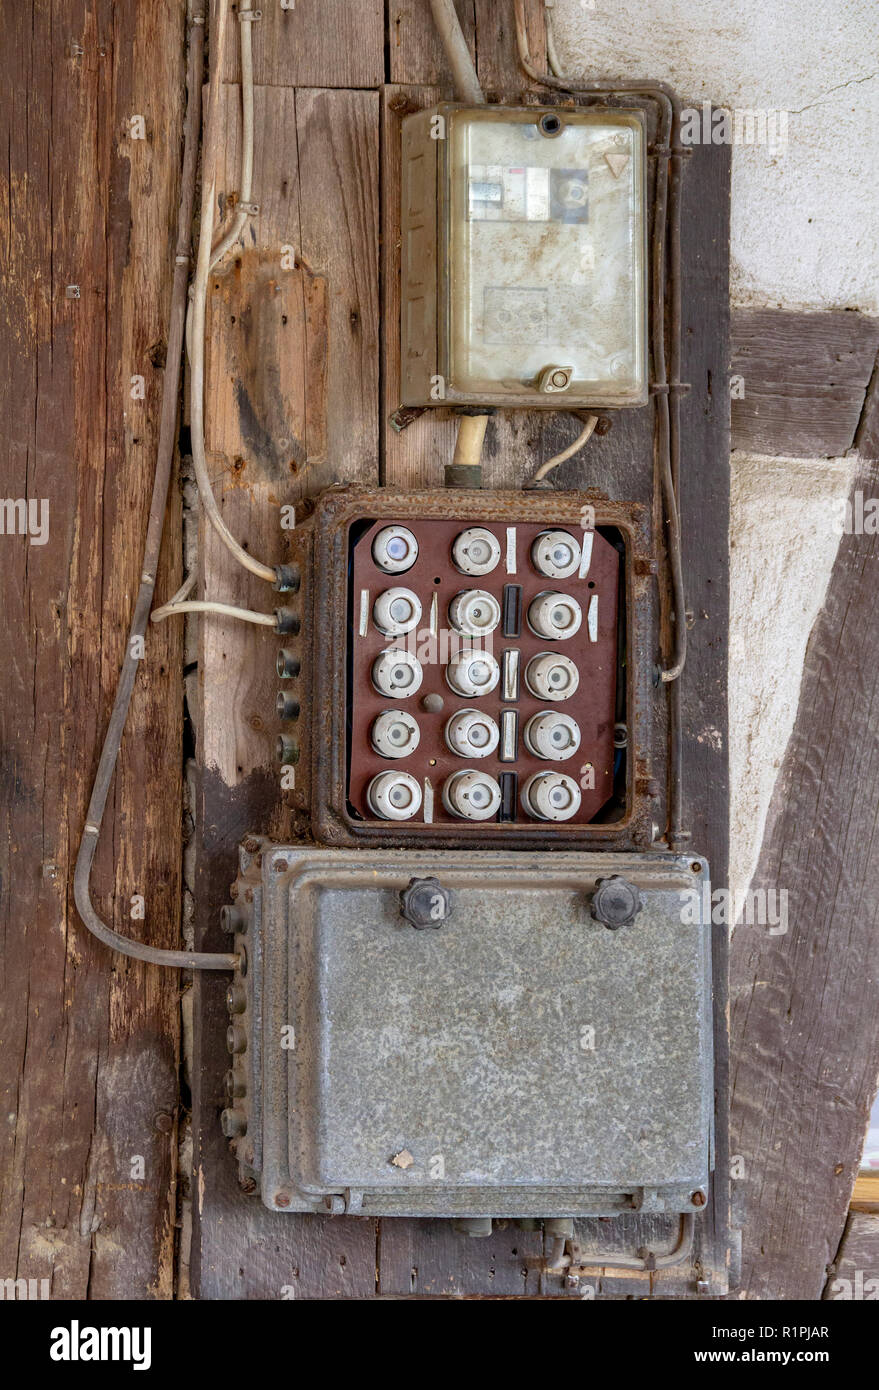 Old Electrical Fuse Box High Resolution Stock Photography and Images - AlamyAlamy